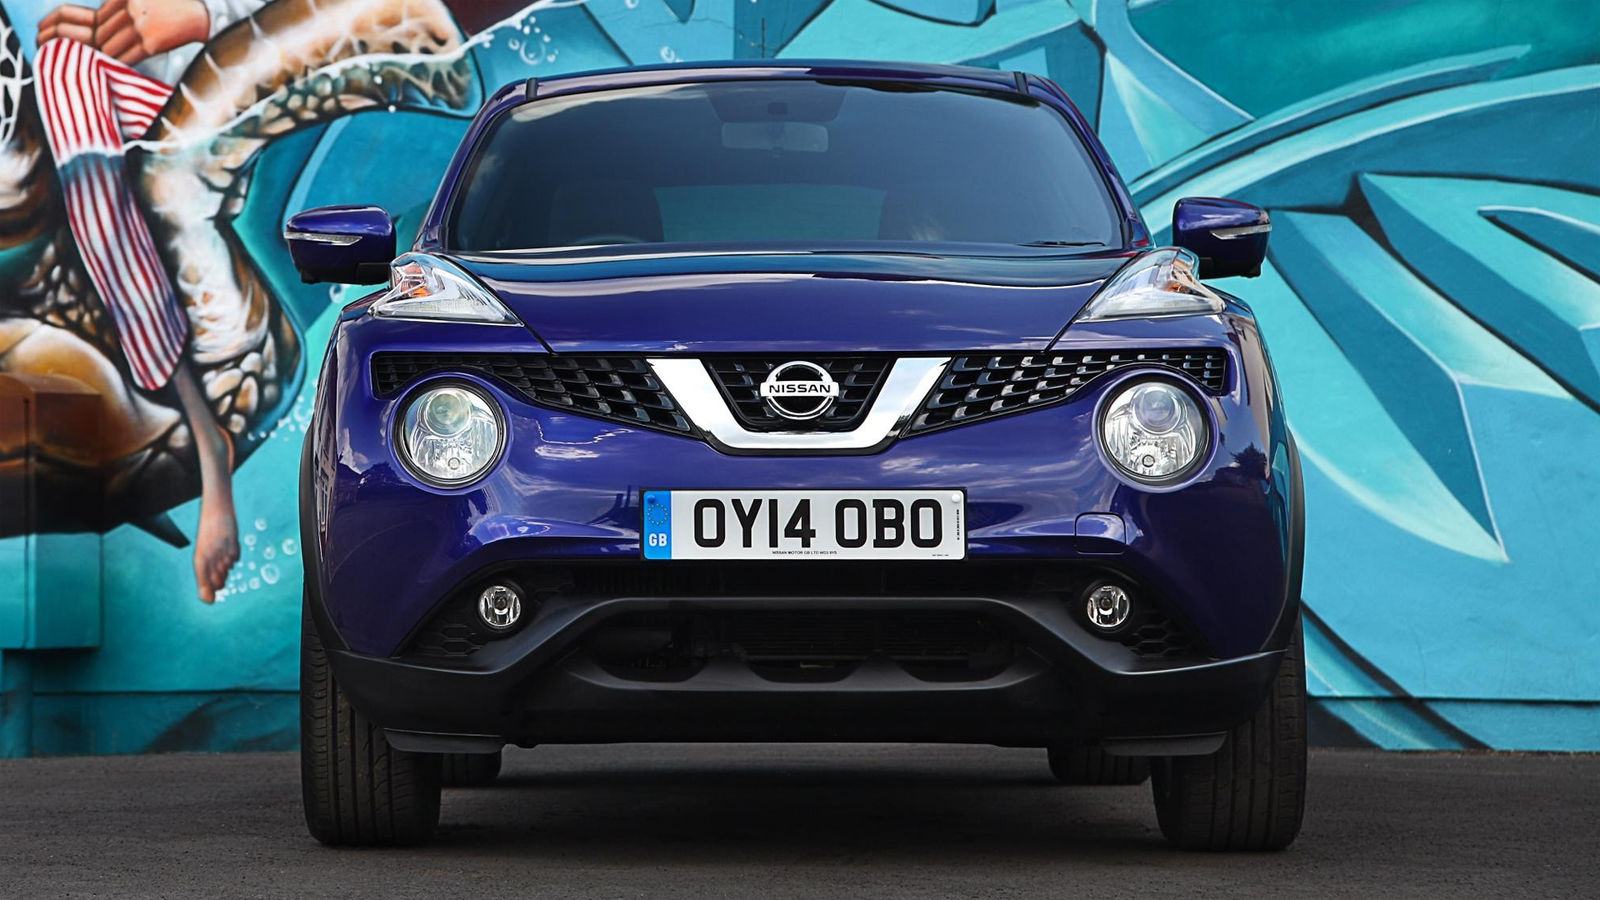 nissan juke sizes and dimensions guide carwow. Black Bedroom Furniture Sets. Home Design Ideas